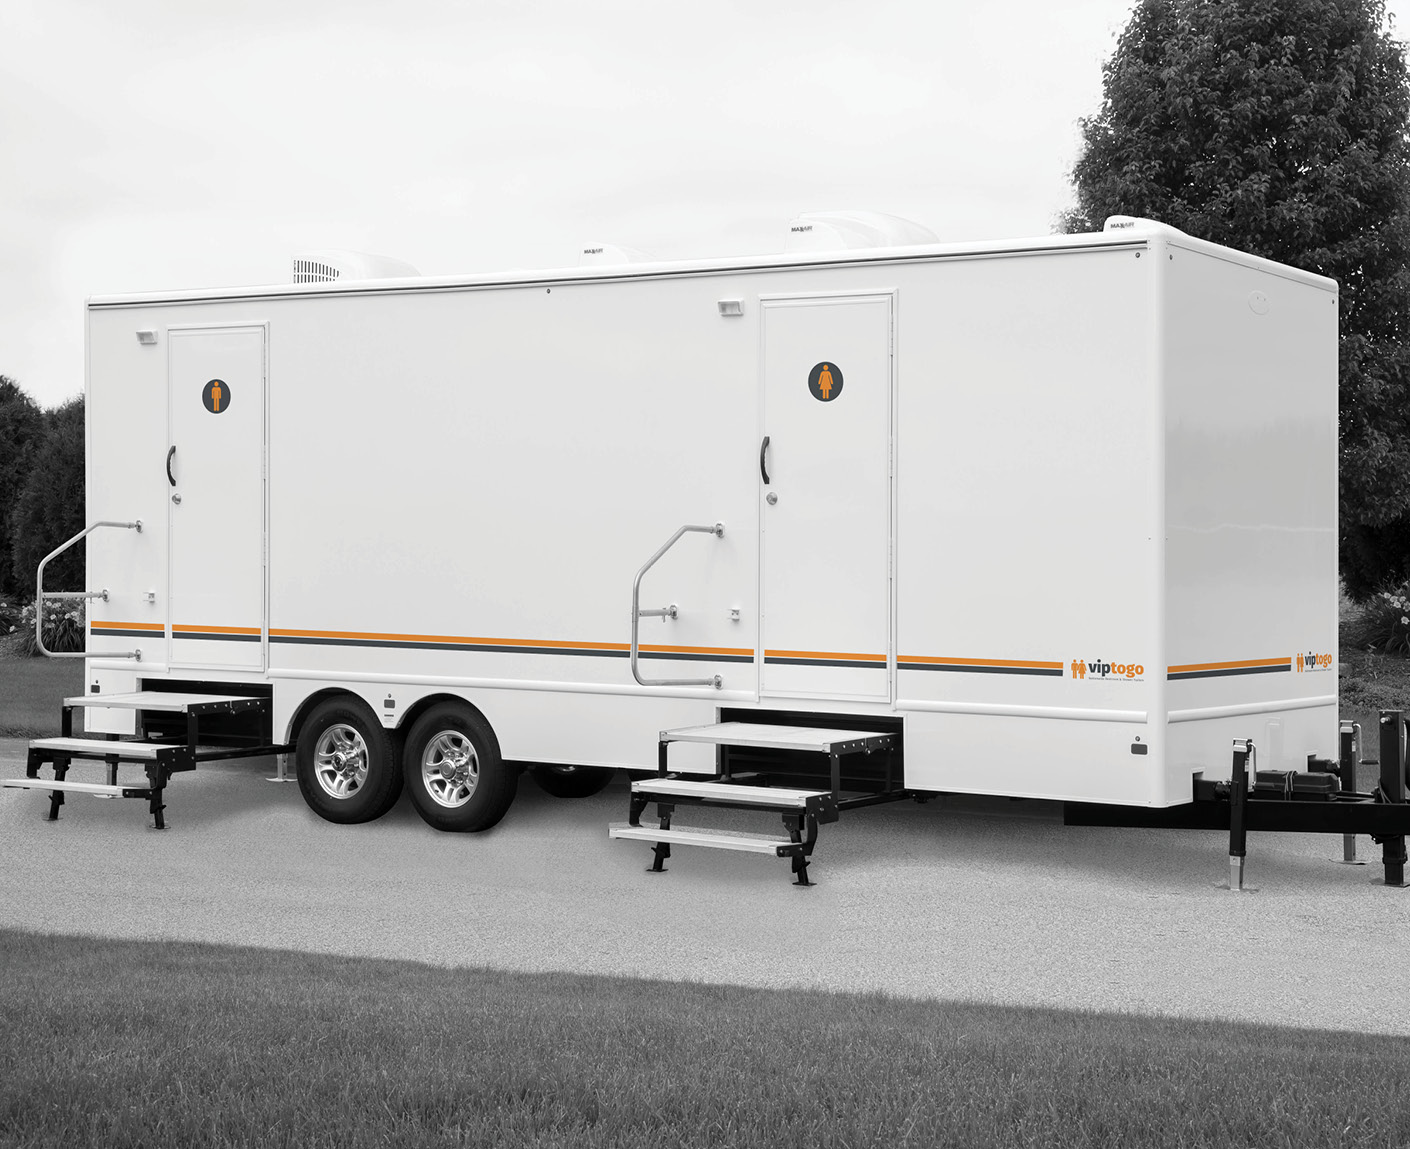 A front view of trailer booth with ten restrooms, and two doors with male and female sign on them